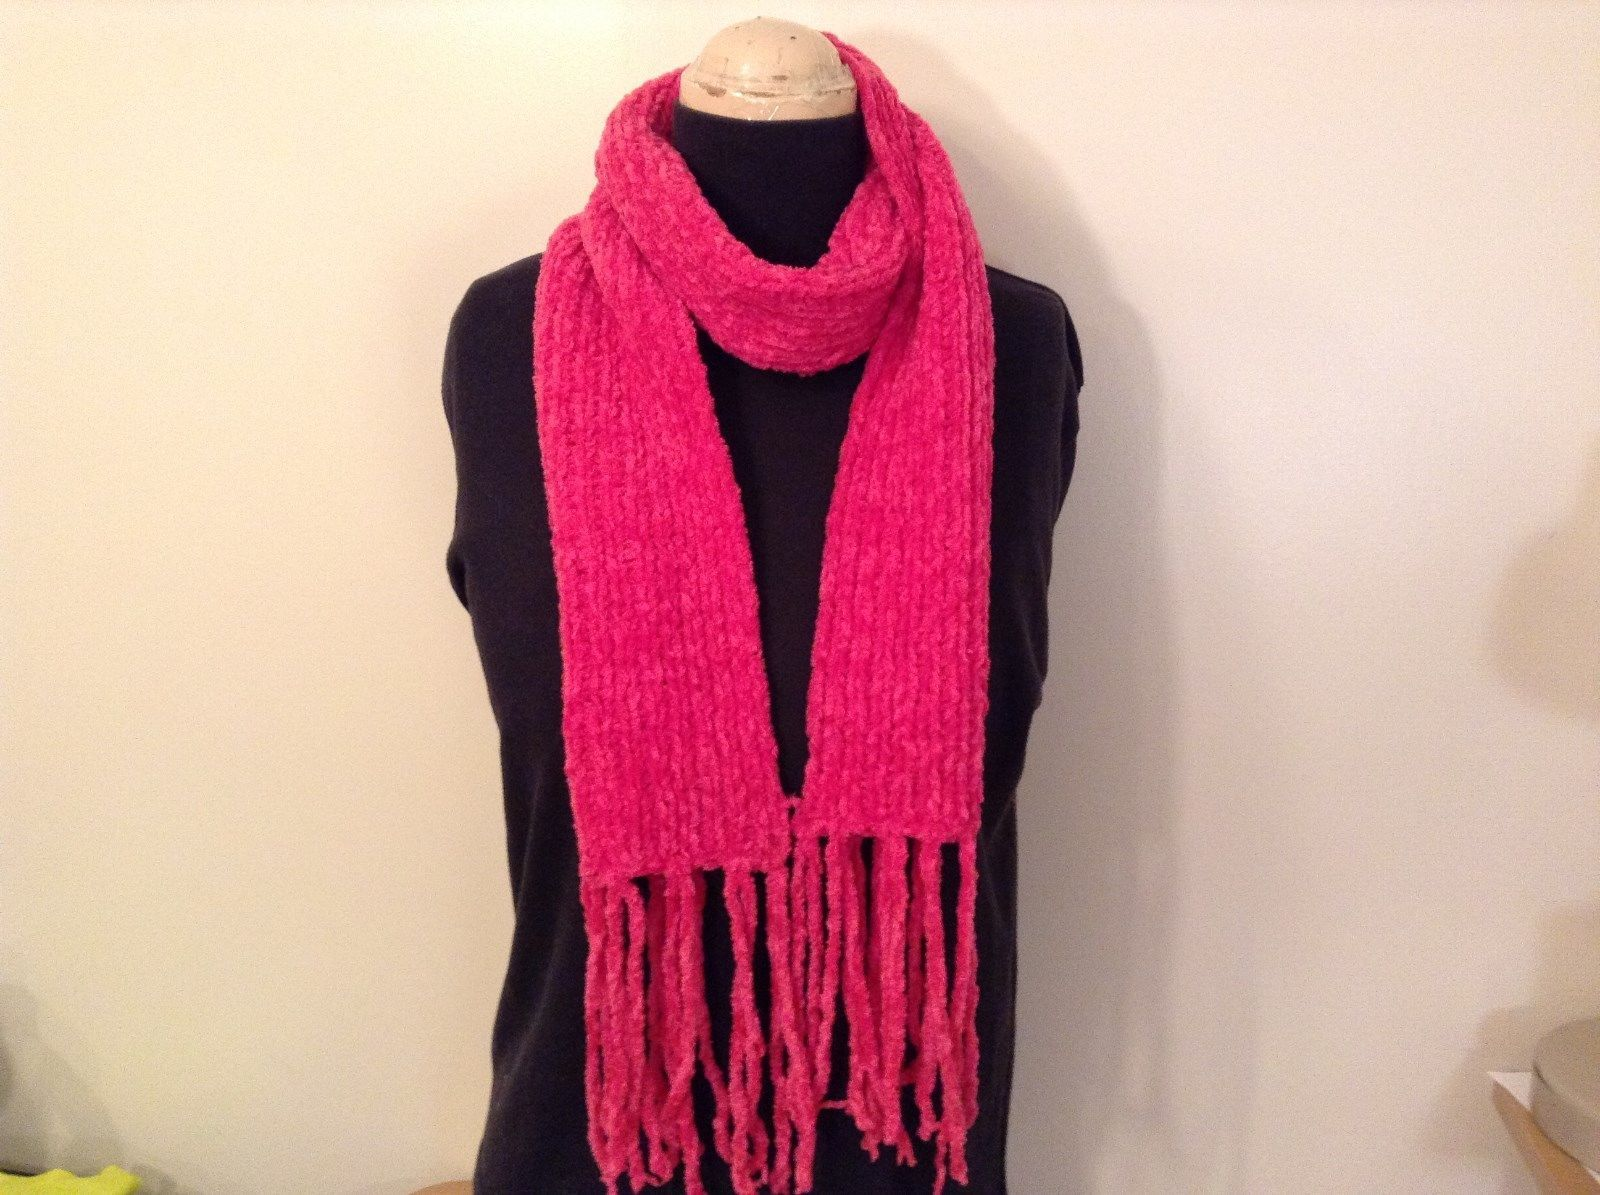 100 Percent Acrylic Neon Pink Scarf 62 Inches Long 6 Inches Wide